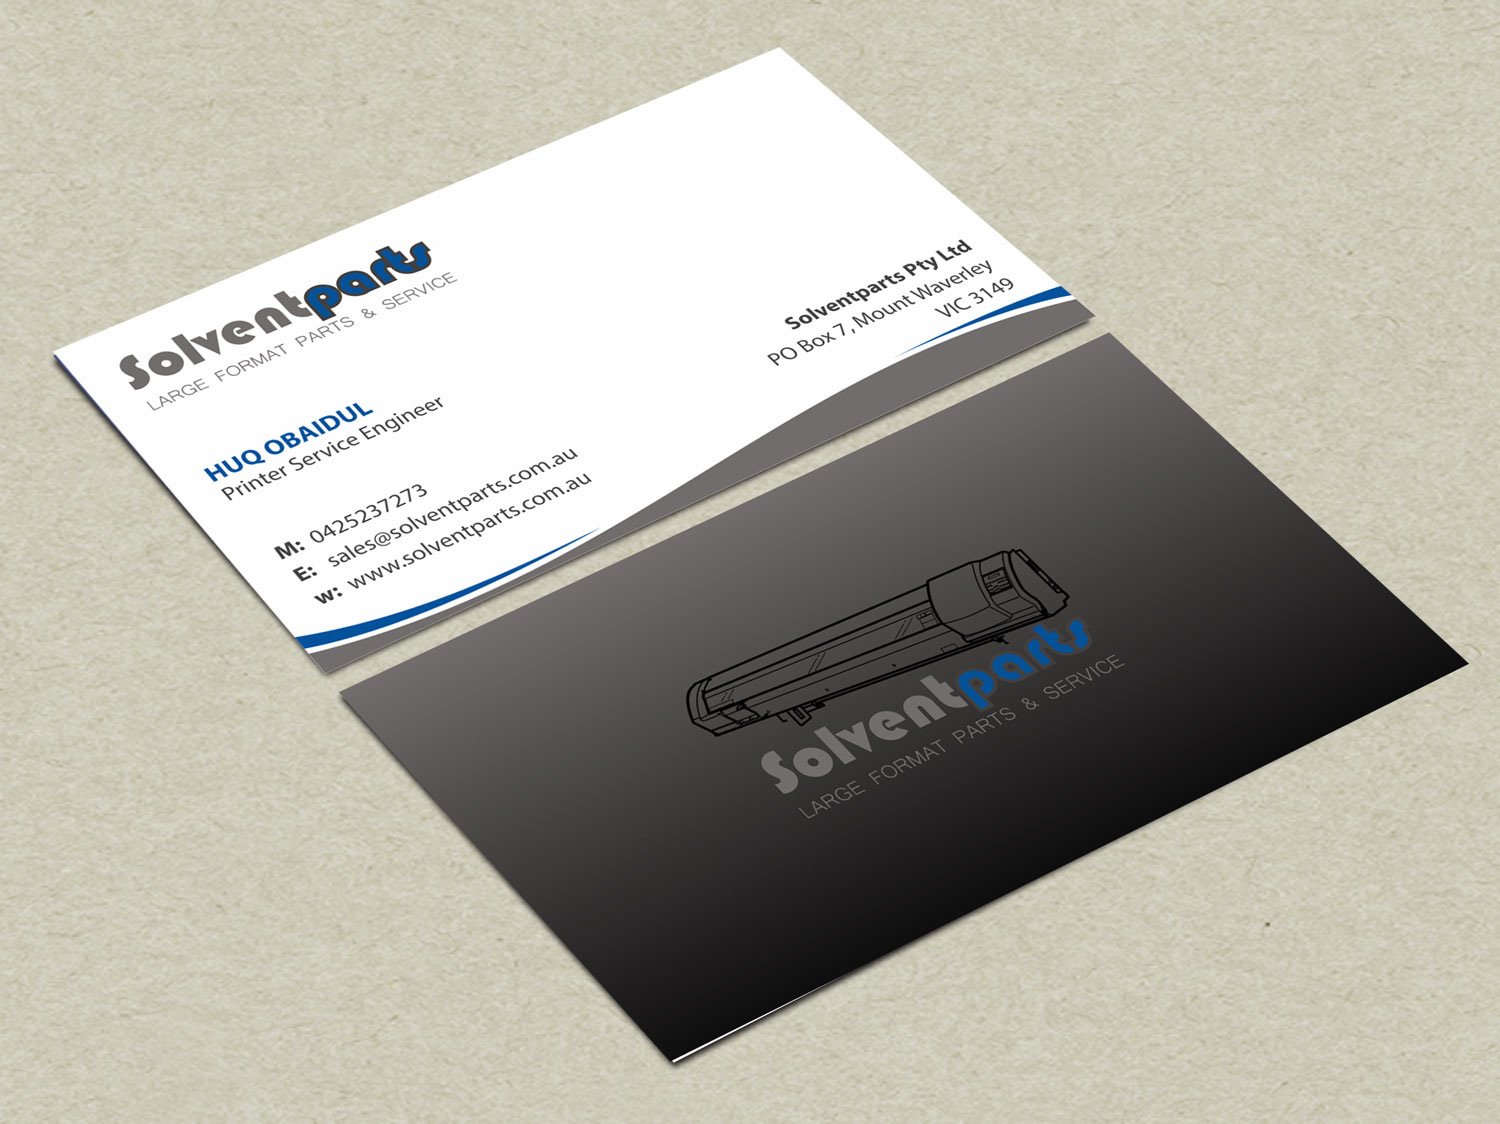 Personable conservative business business card design for business card design by madhuraminfotech for solventparts design 14765617 reheart Image collections